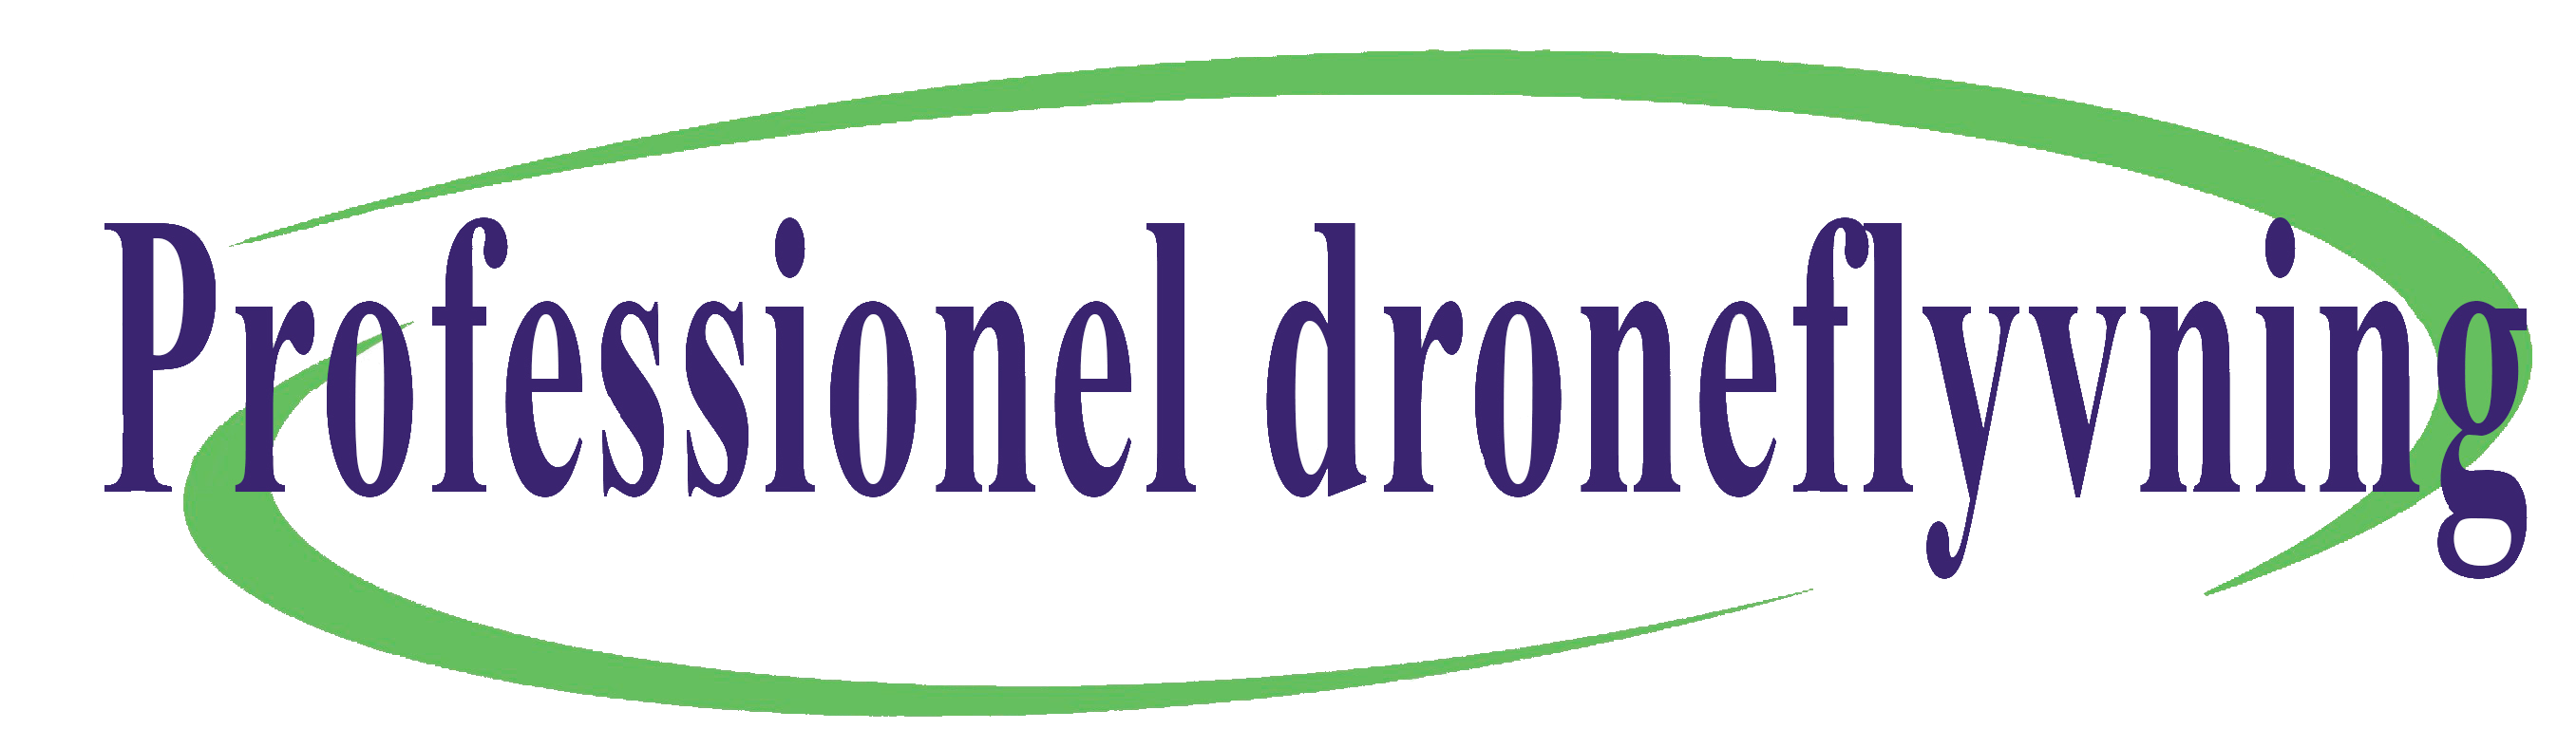 Professionel droneflyvning